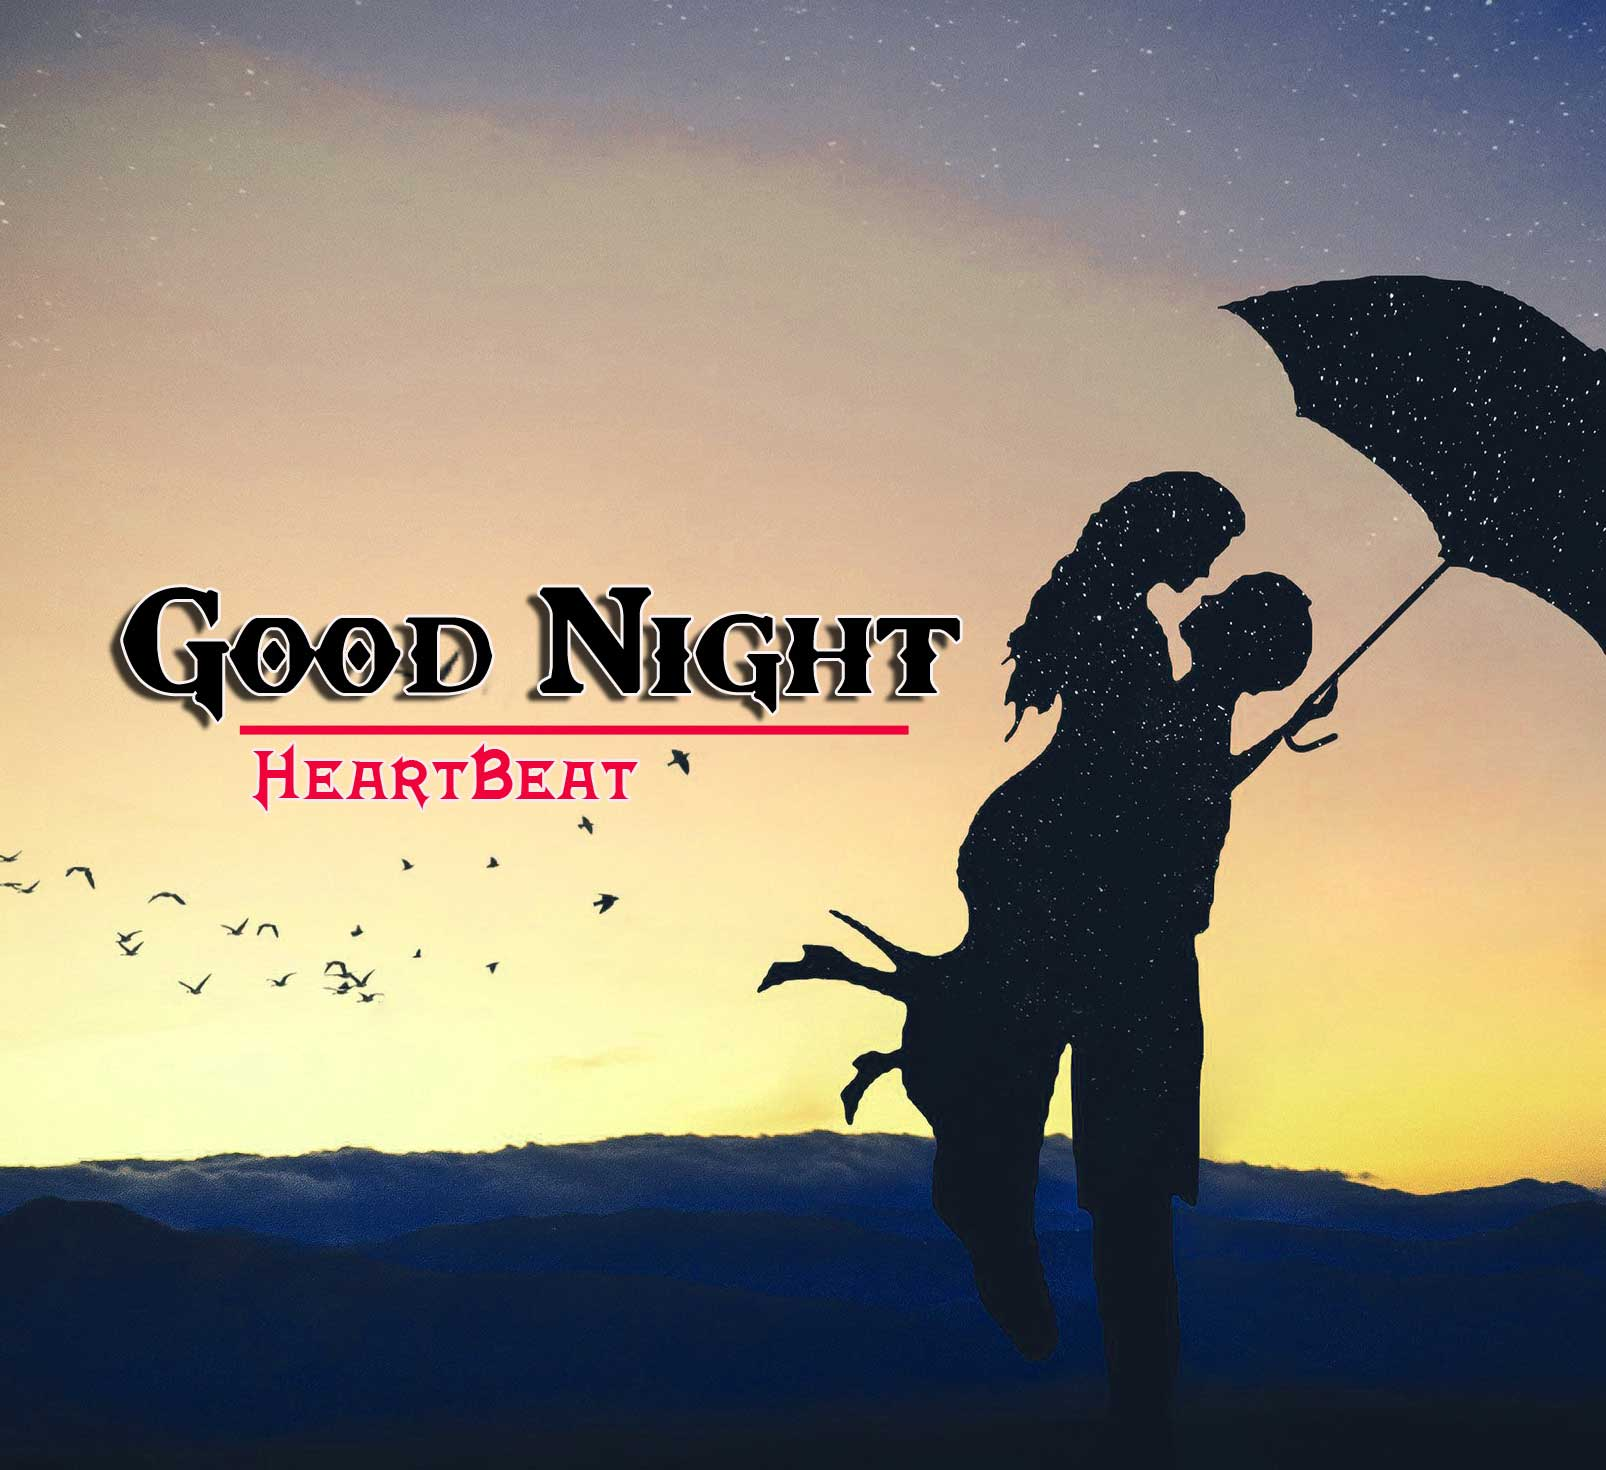 Good Night Wishes Images Pics for Whatsapp